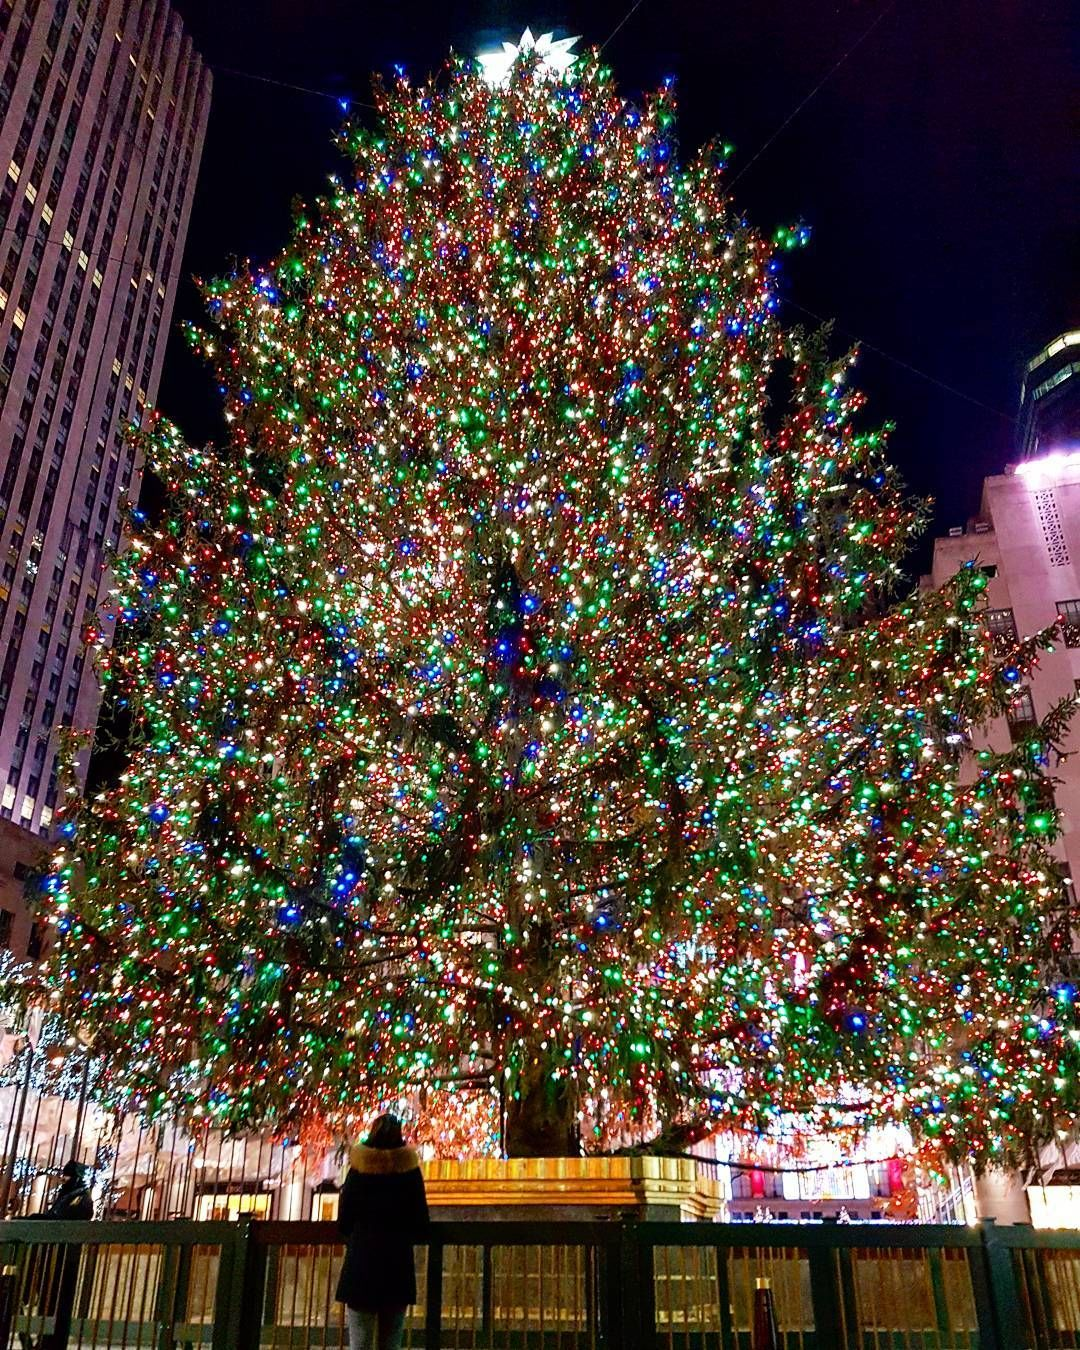 A dream comes true. Standing in front of this huge christmas tree at Rockefeller Center in New York City 🎄🎁🎉 #travelerela 💋🌹❤ #itsthemostwonderfultimeoftheyear #christmas #rockefellercenter #nyc #christmastree #manhattan #tree #dream #ny #travelbucketlist #travellingaroundtheworld #fondoftravel #beautiful #travel #wanderlust #journey #bestvacations #onlyoneway